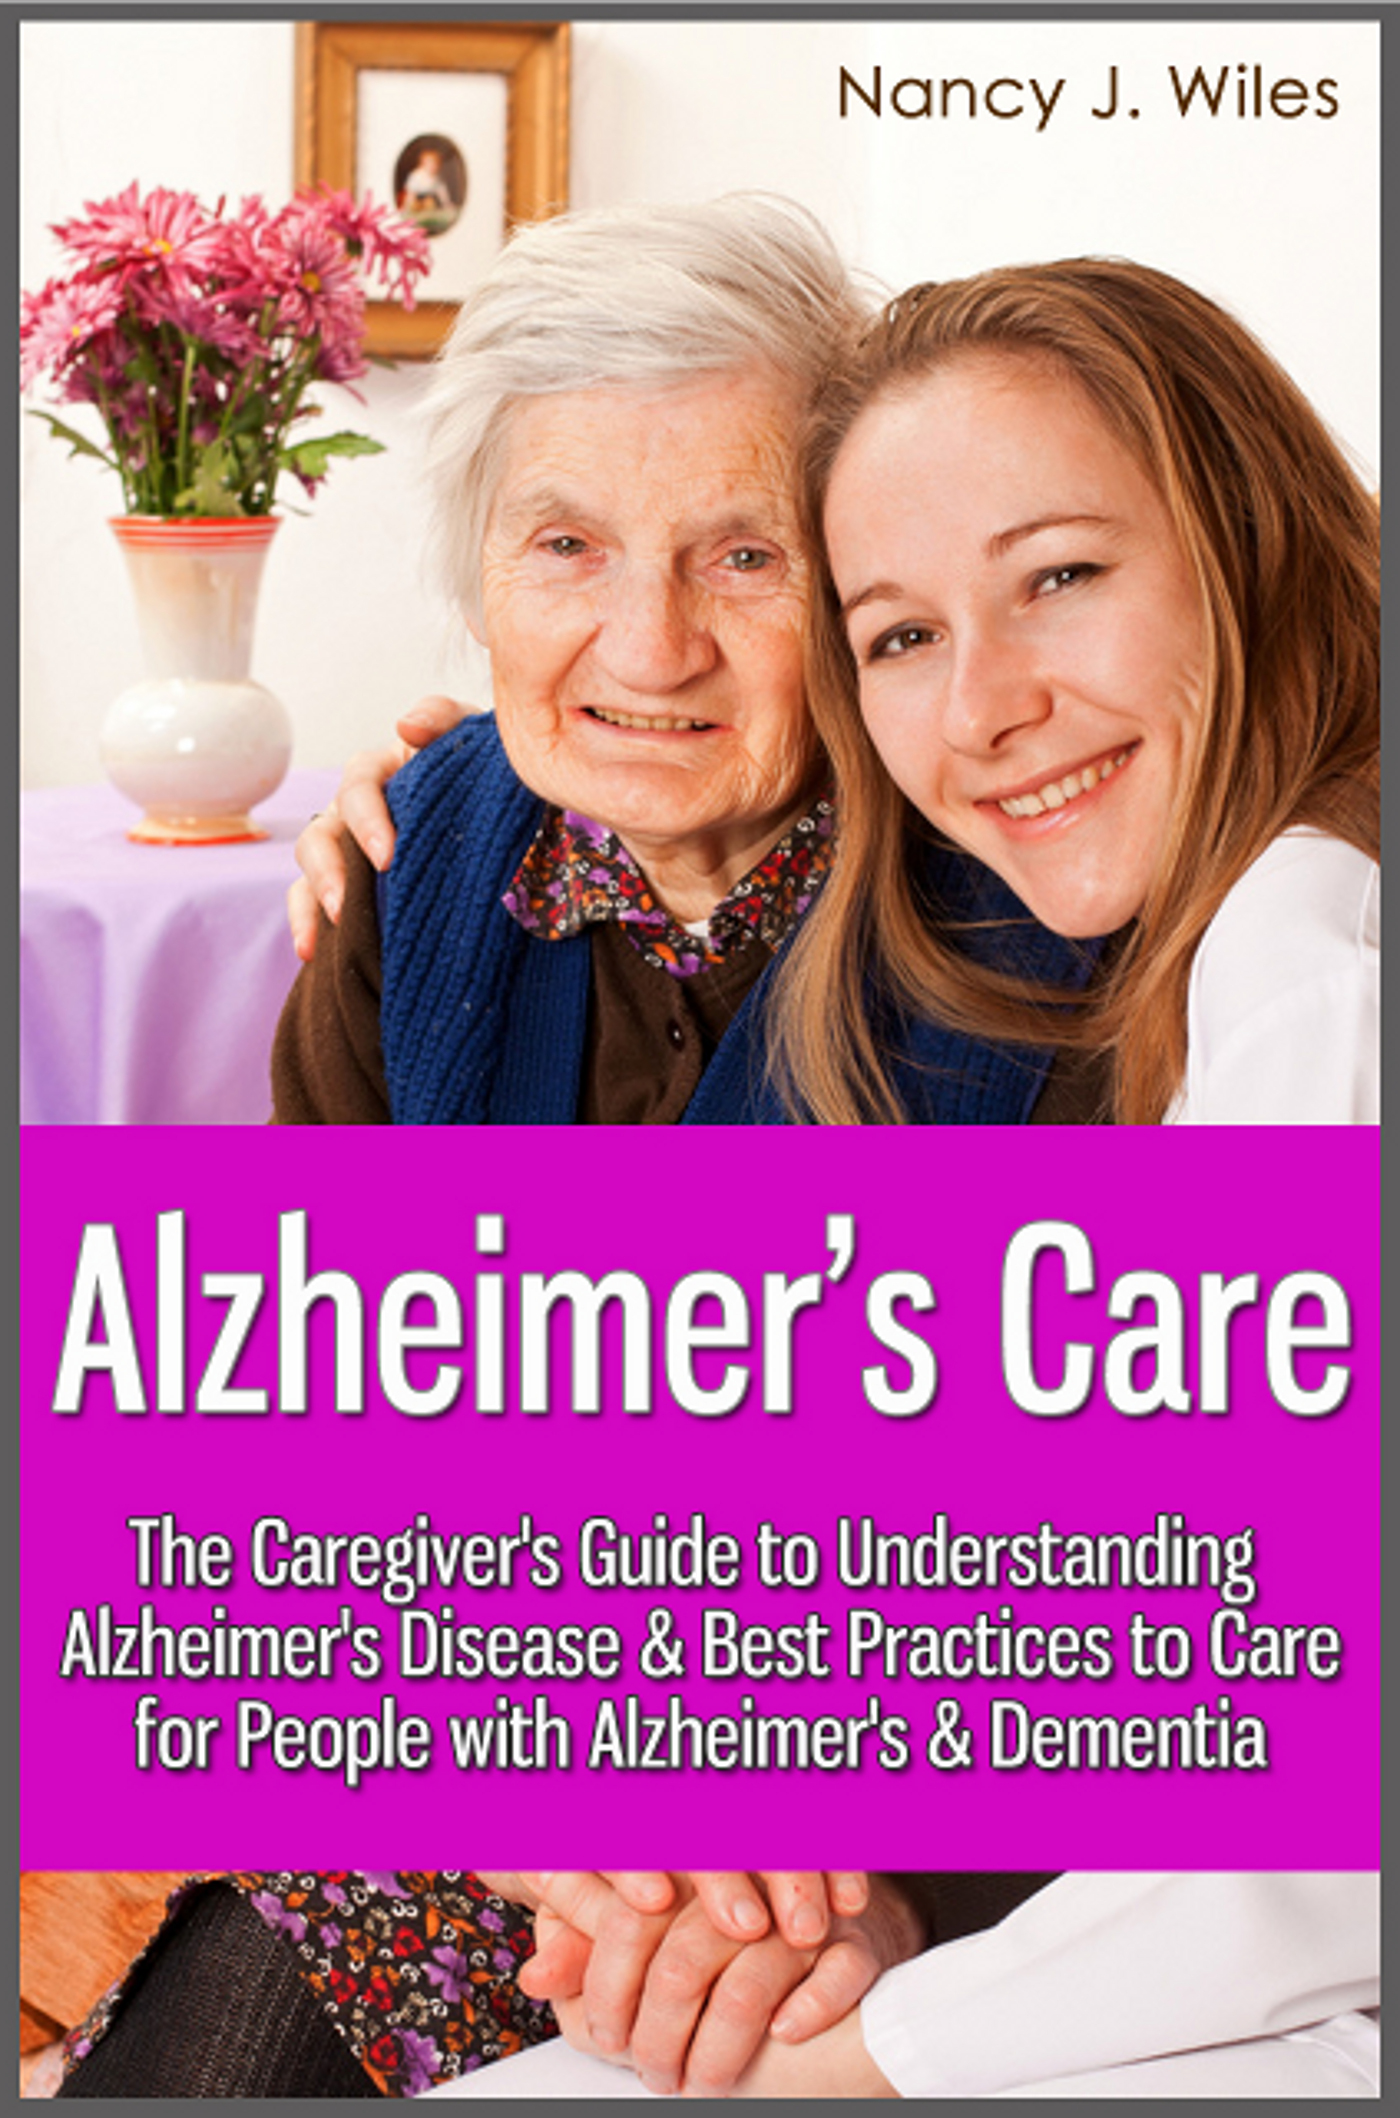 caregivers of individuals with alzheimers disease